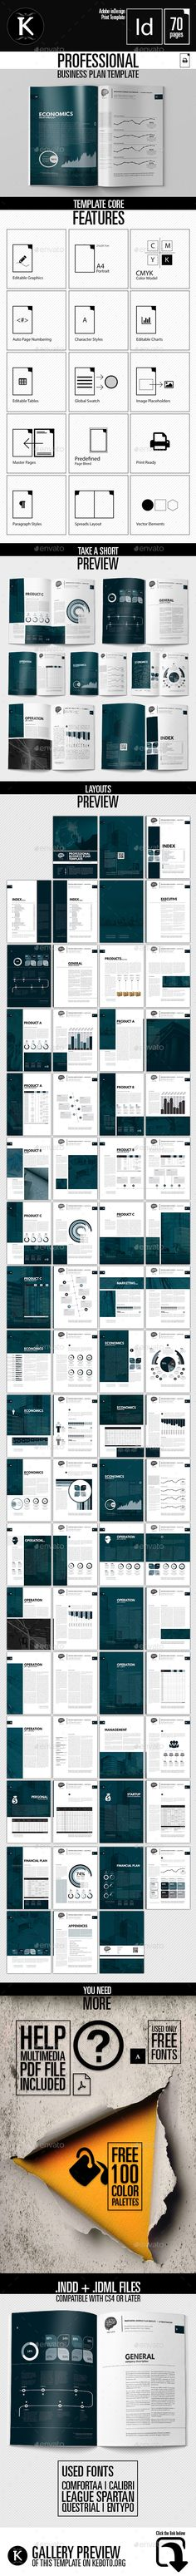 Professional Business Plan Template The business plan consists of - professional business plan